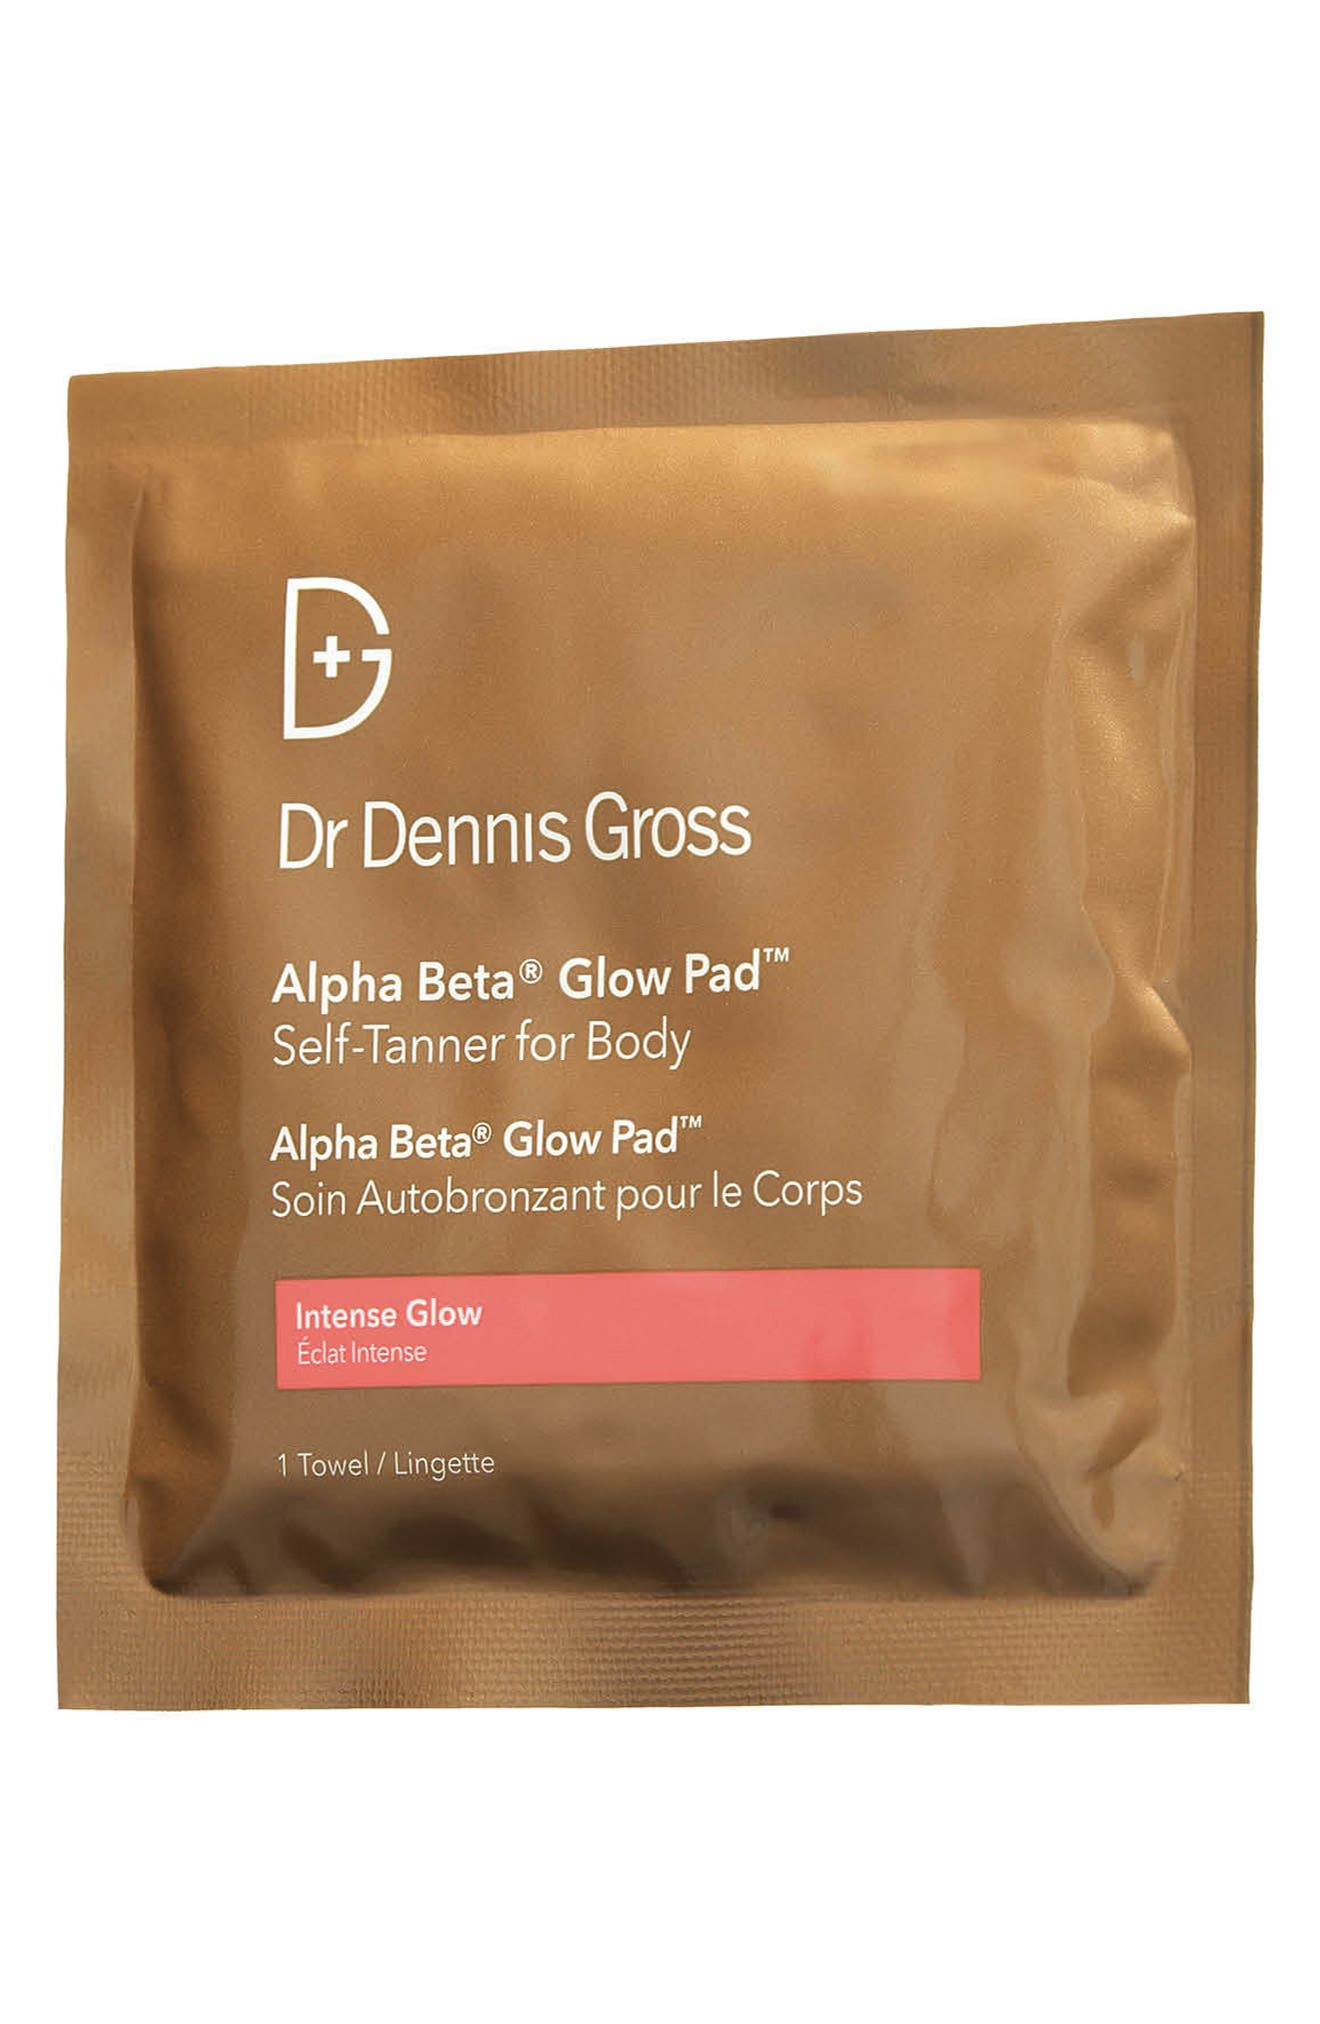 'Alpha Beta<sup>®</sup> Glow Pads' Exfoliating Anti-Aging Self-Tanner for Body,                             Main thumbnail 1, color,                             NO COLOR